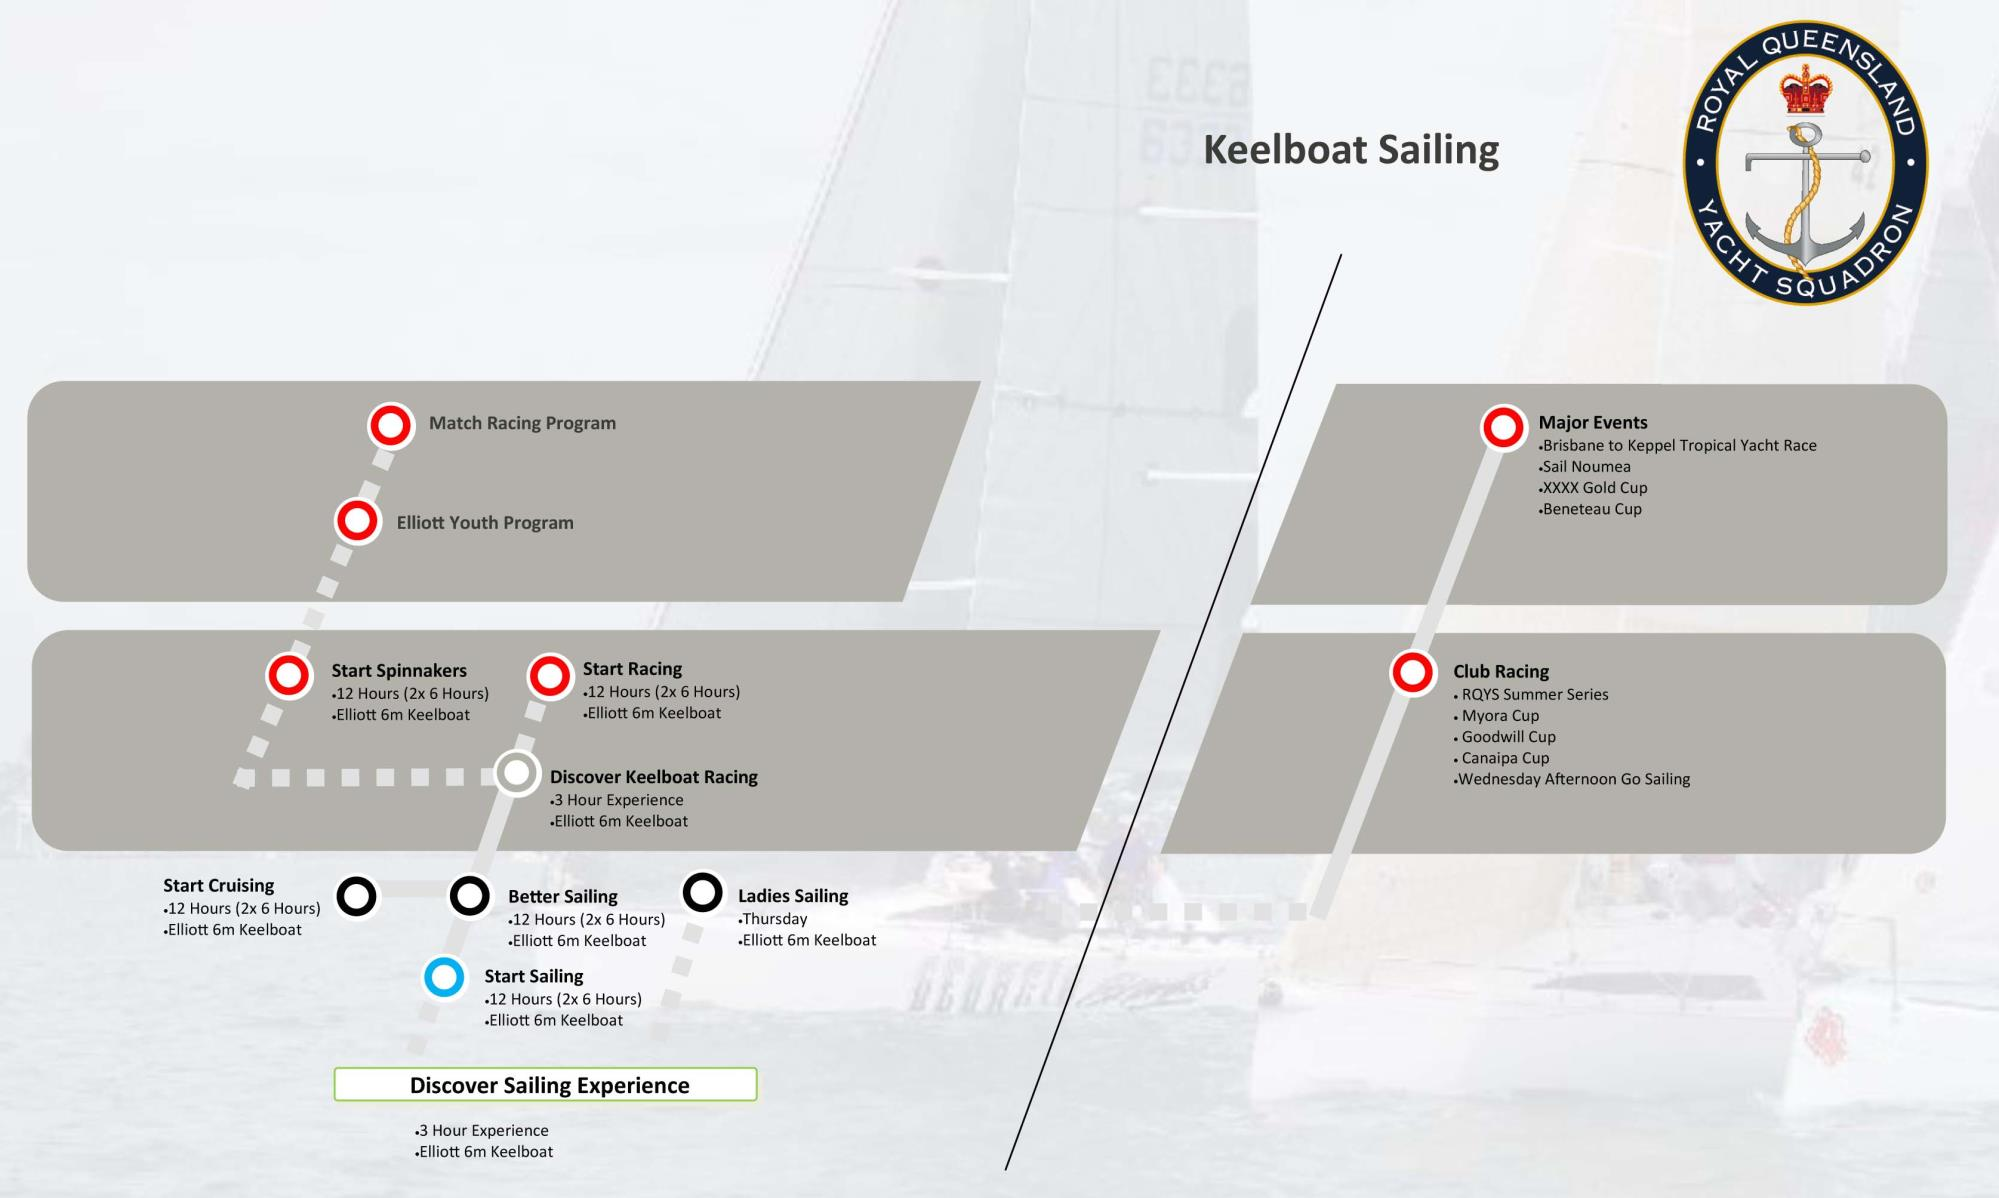 PATHWAYS - Keelboat Sailing